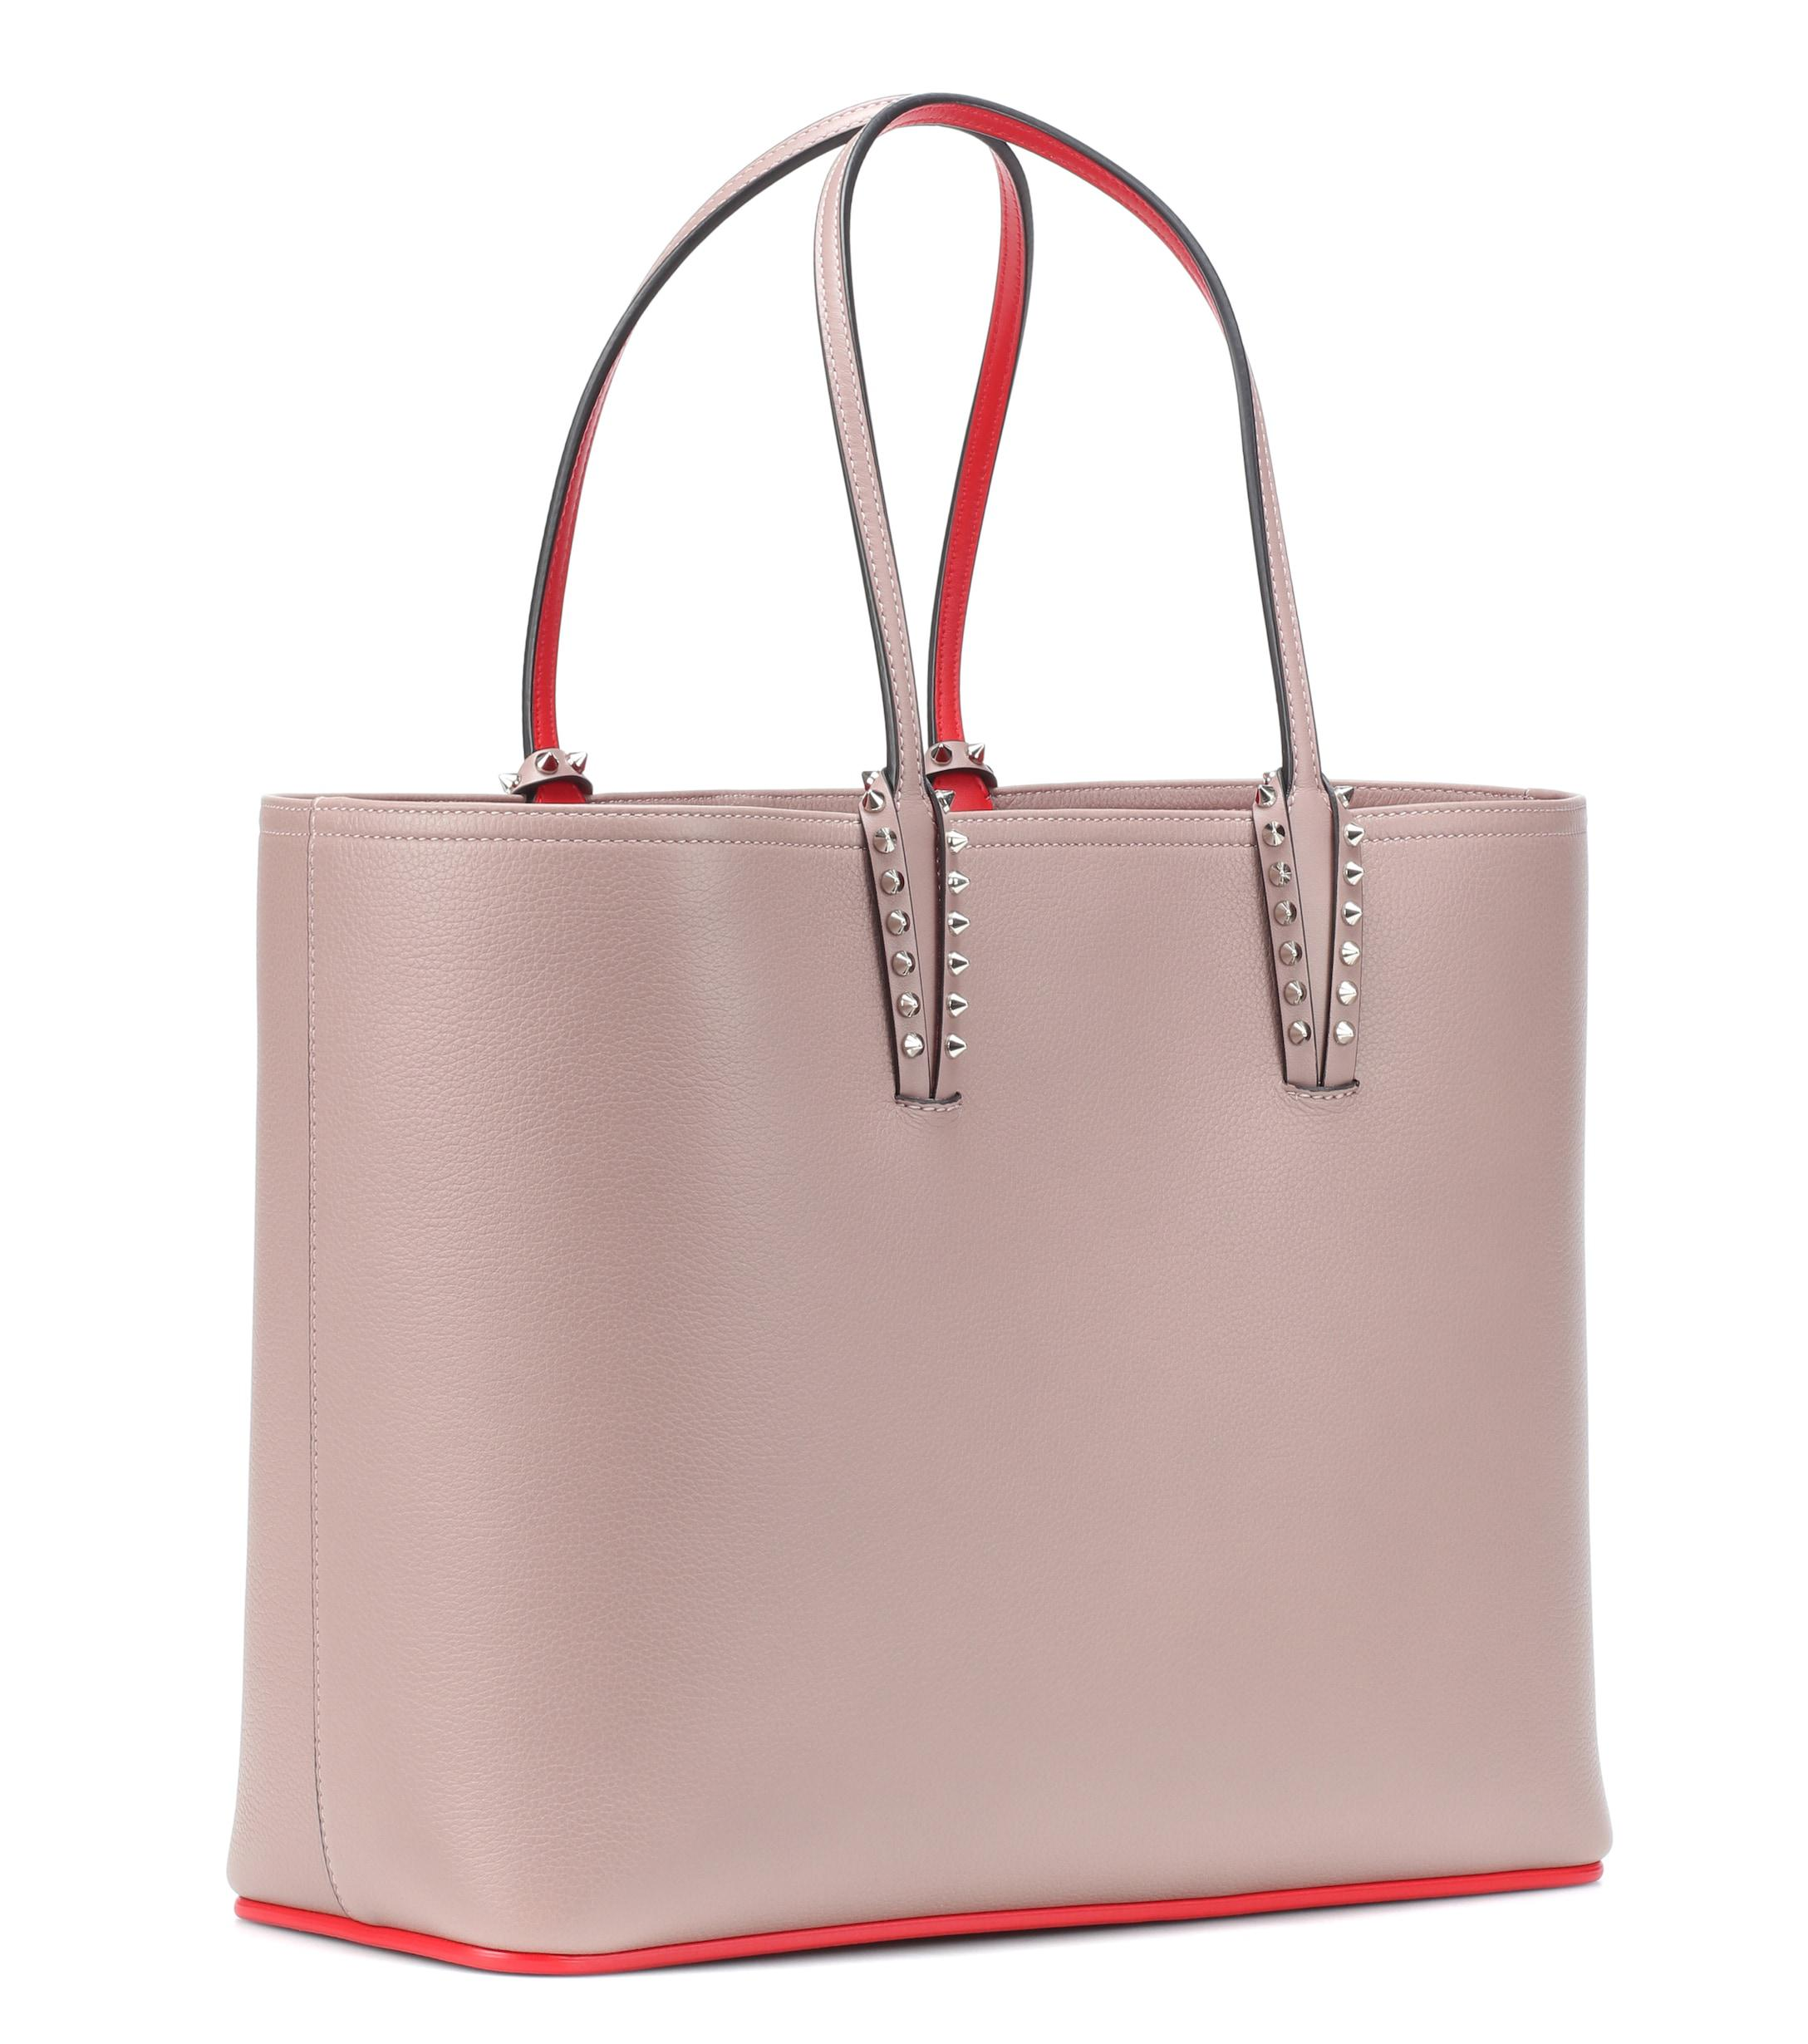 Christian Louboutin - Multicolor Cabata Leather Tote - Lyst. View fullscreen 7ee407f198970